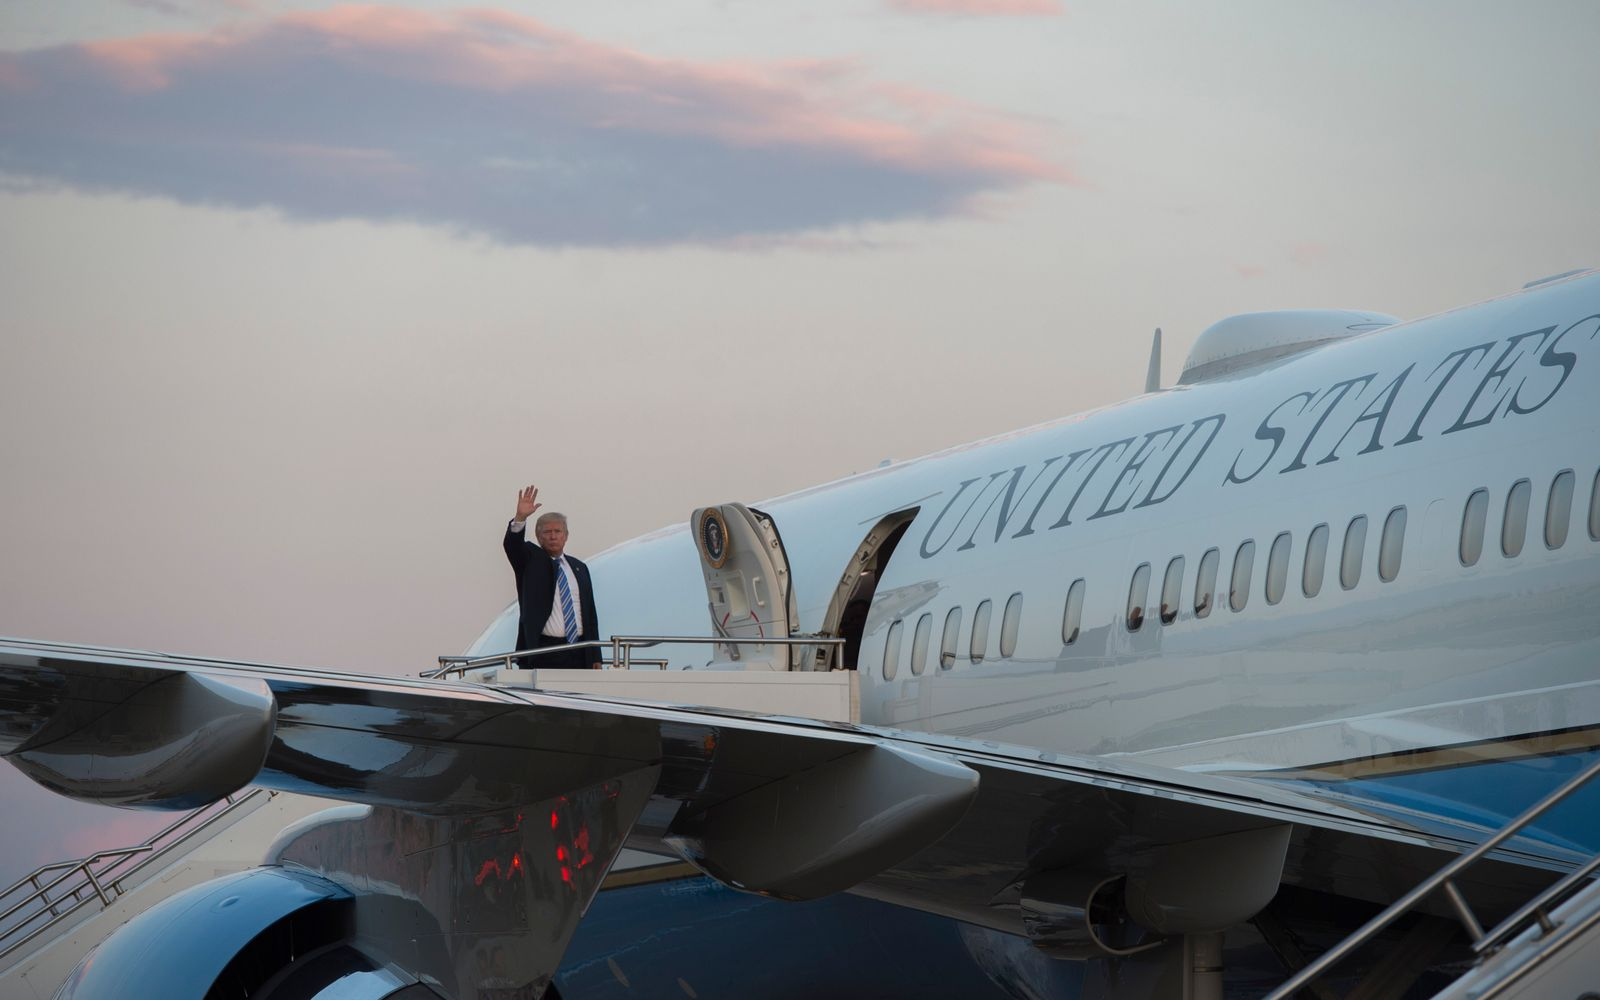 Two New Refrigerators for Air Force One Will Cost $24 Million